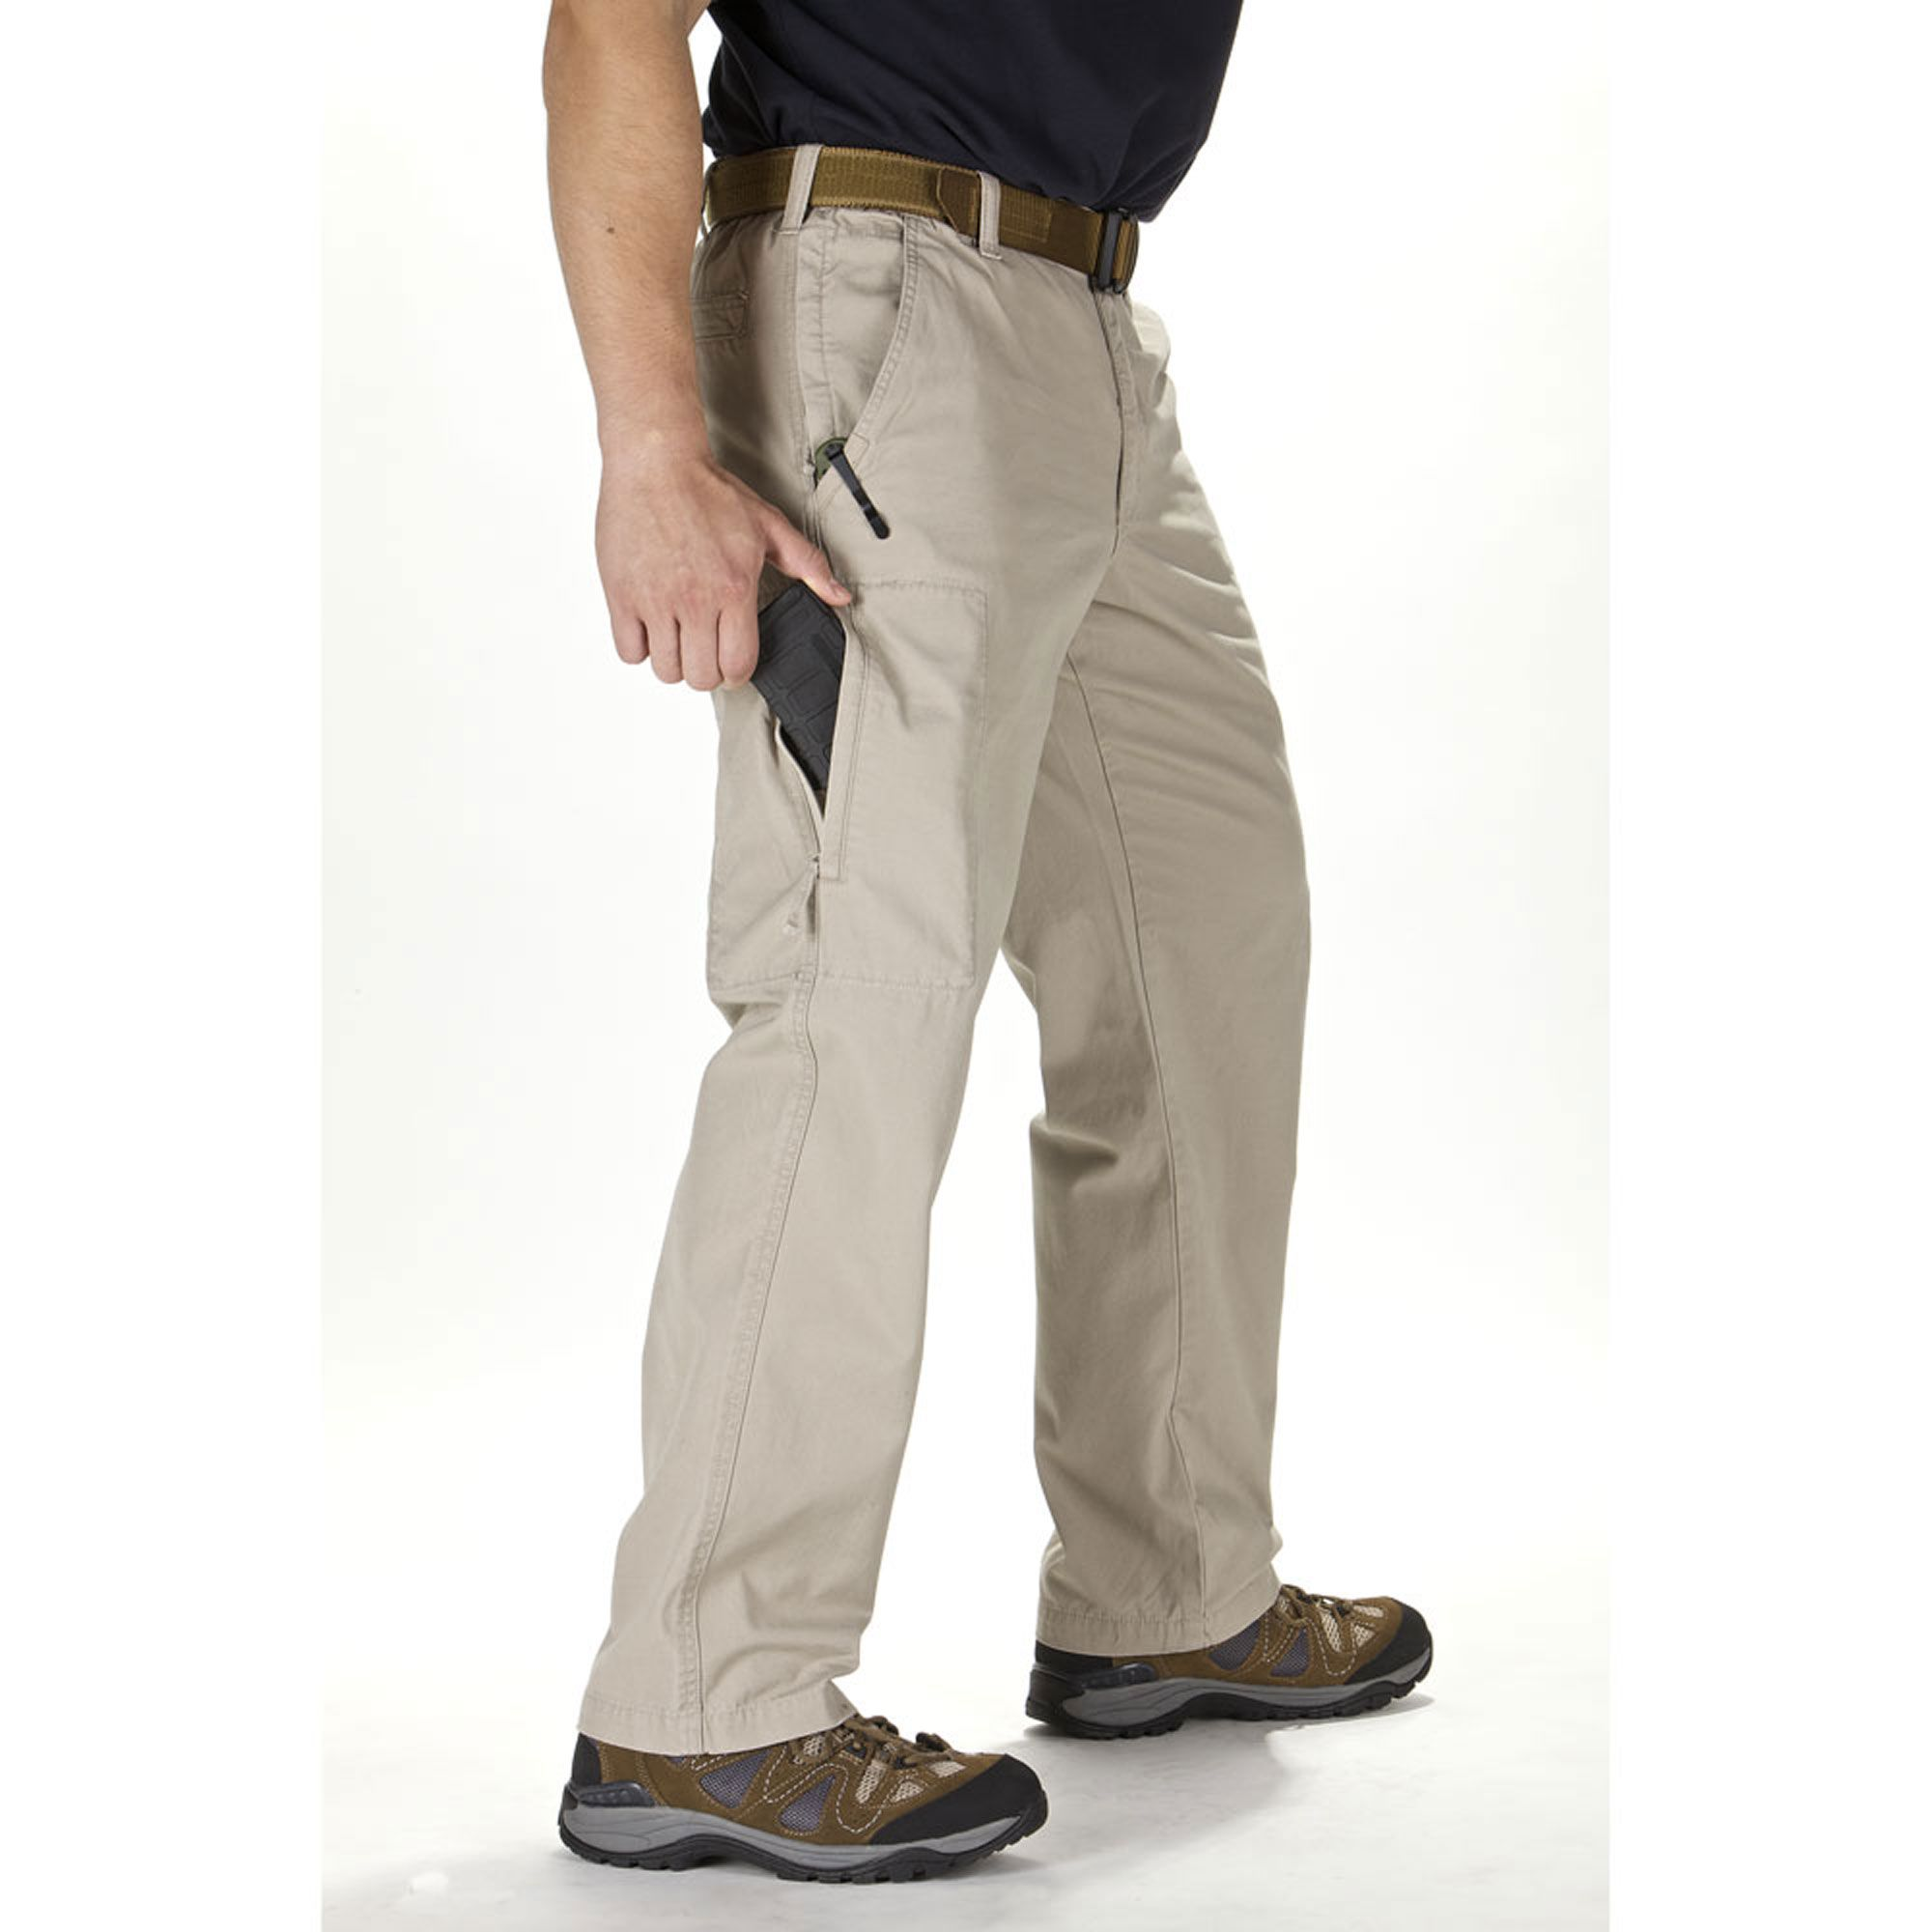 5.11 Tactical Pants - The Original 74251 Khaki Love these pants ...